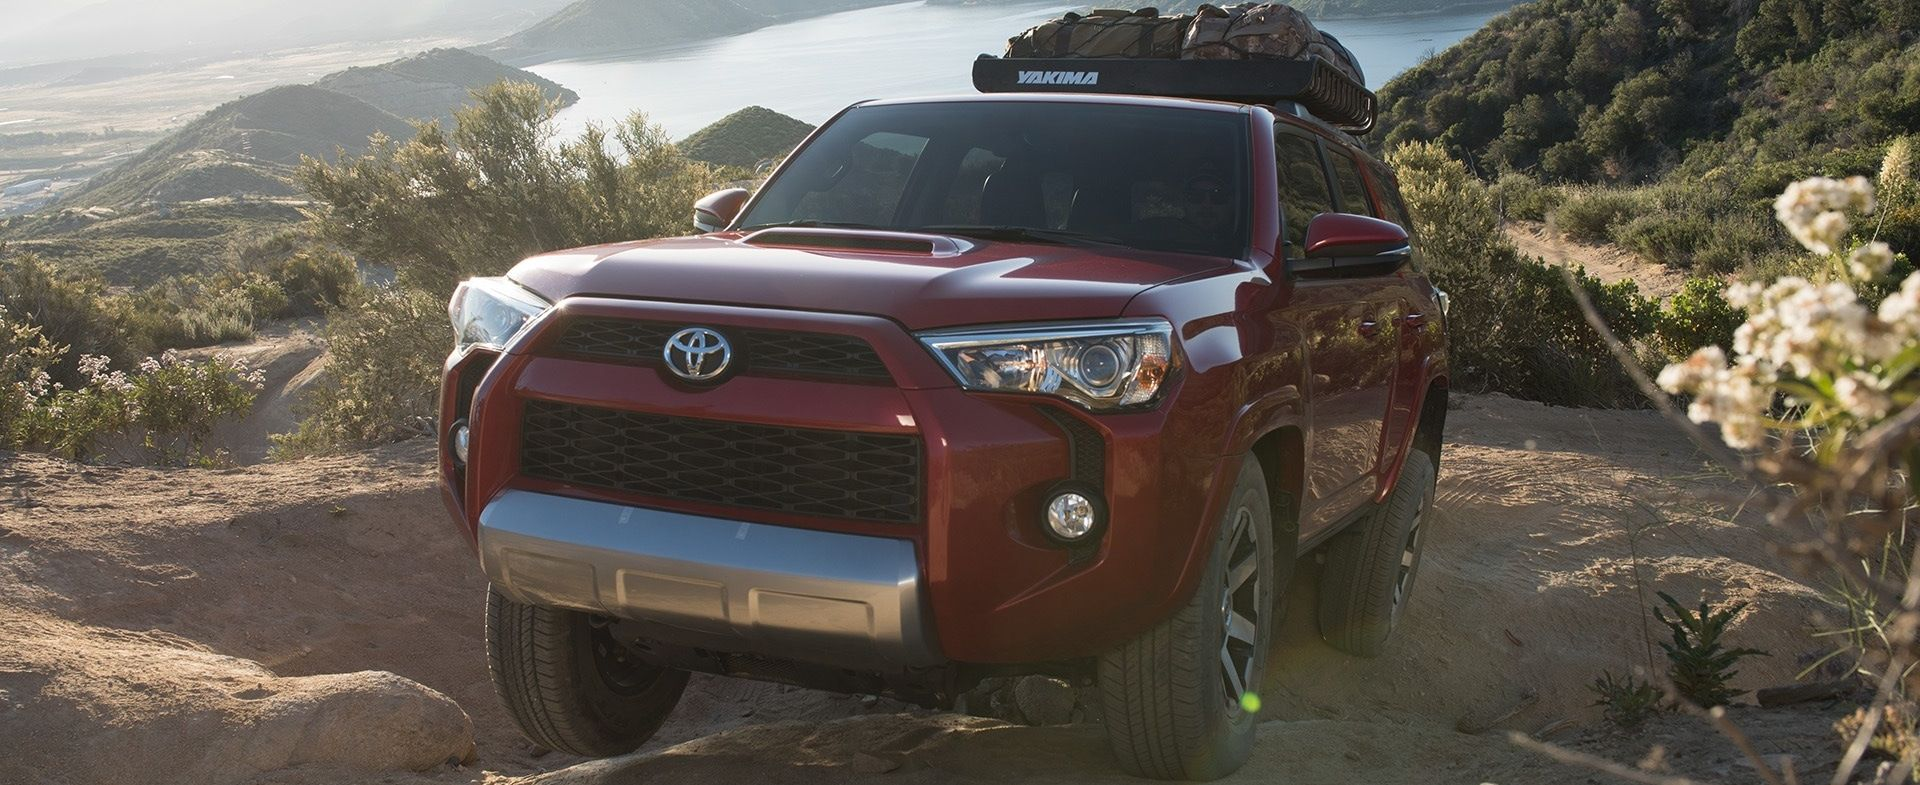 hight resolution of 2018 toyota 4runner leasing in sacramento ca